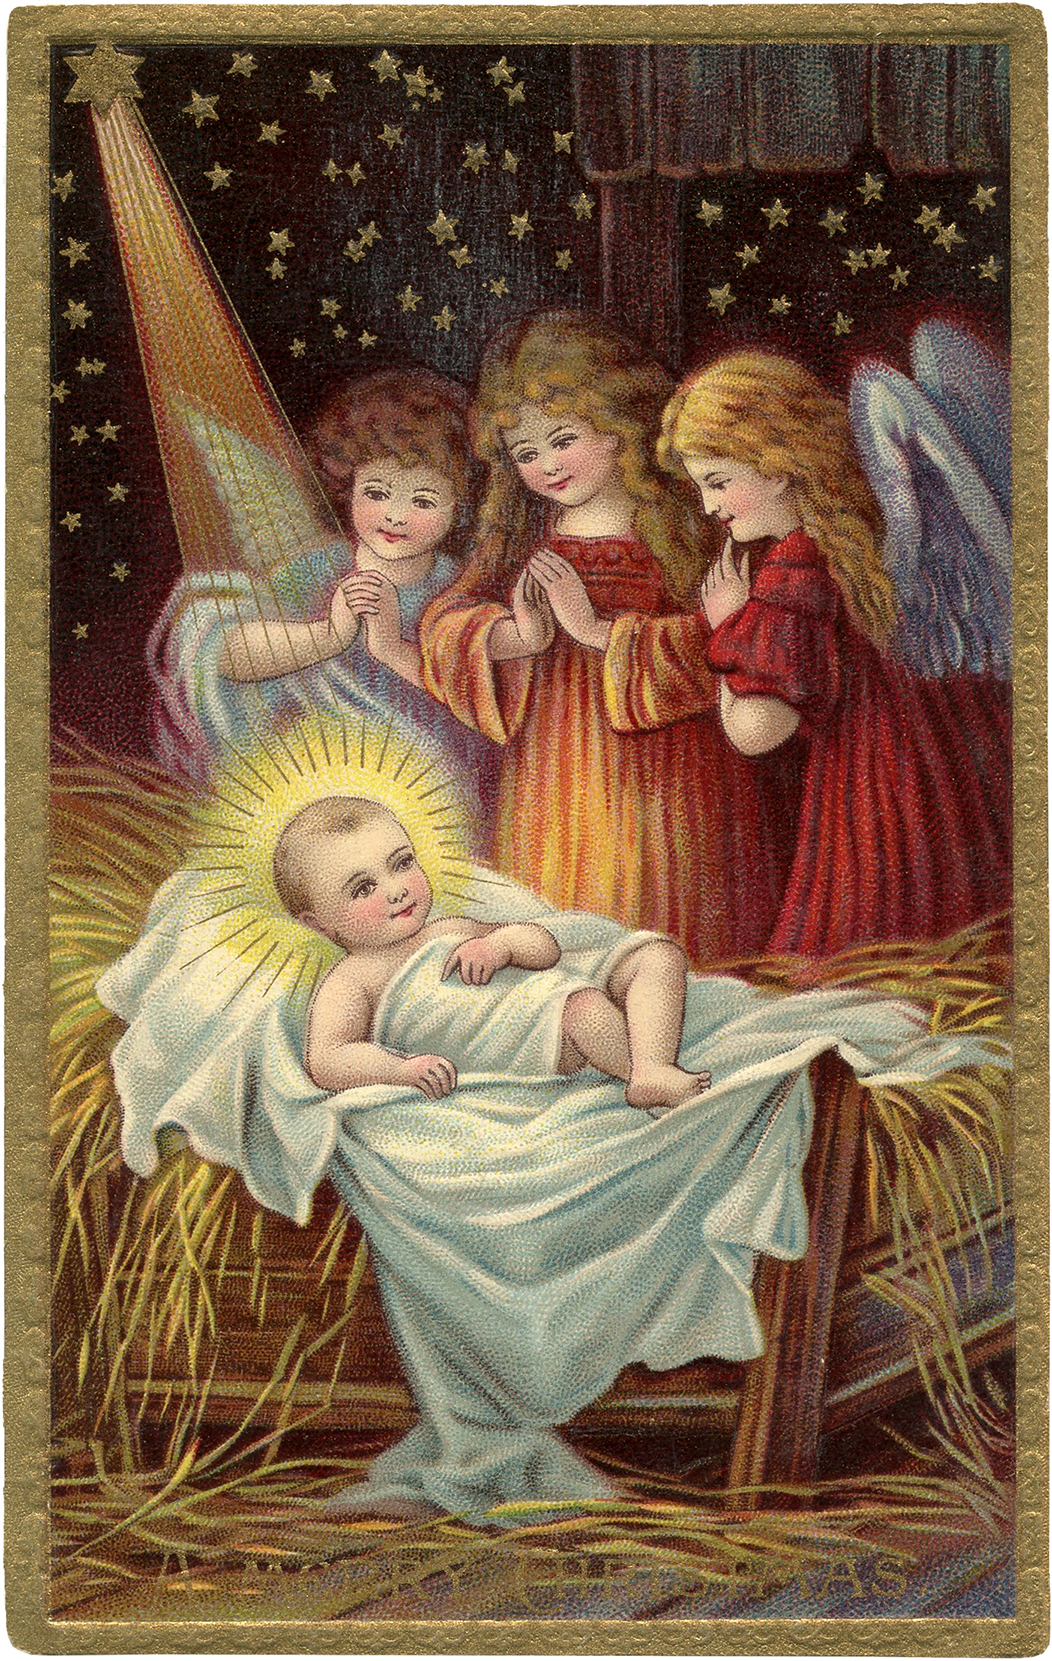 6 Vintage Christmas Nativity Images! - The Graphics Fairy